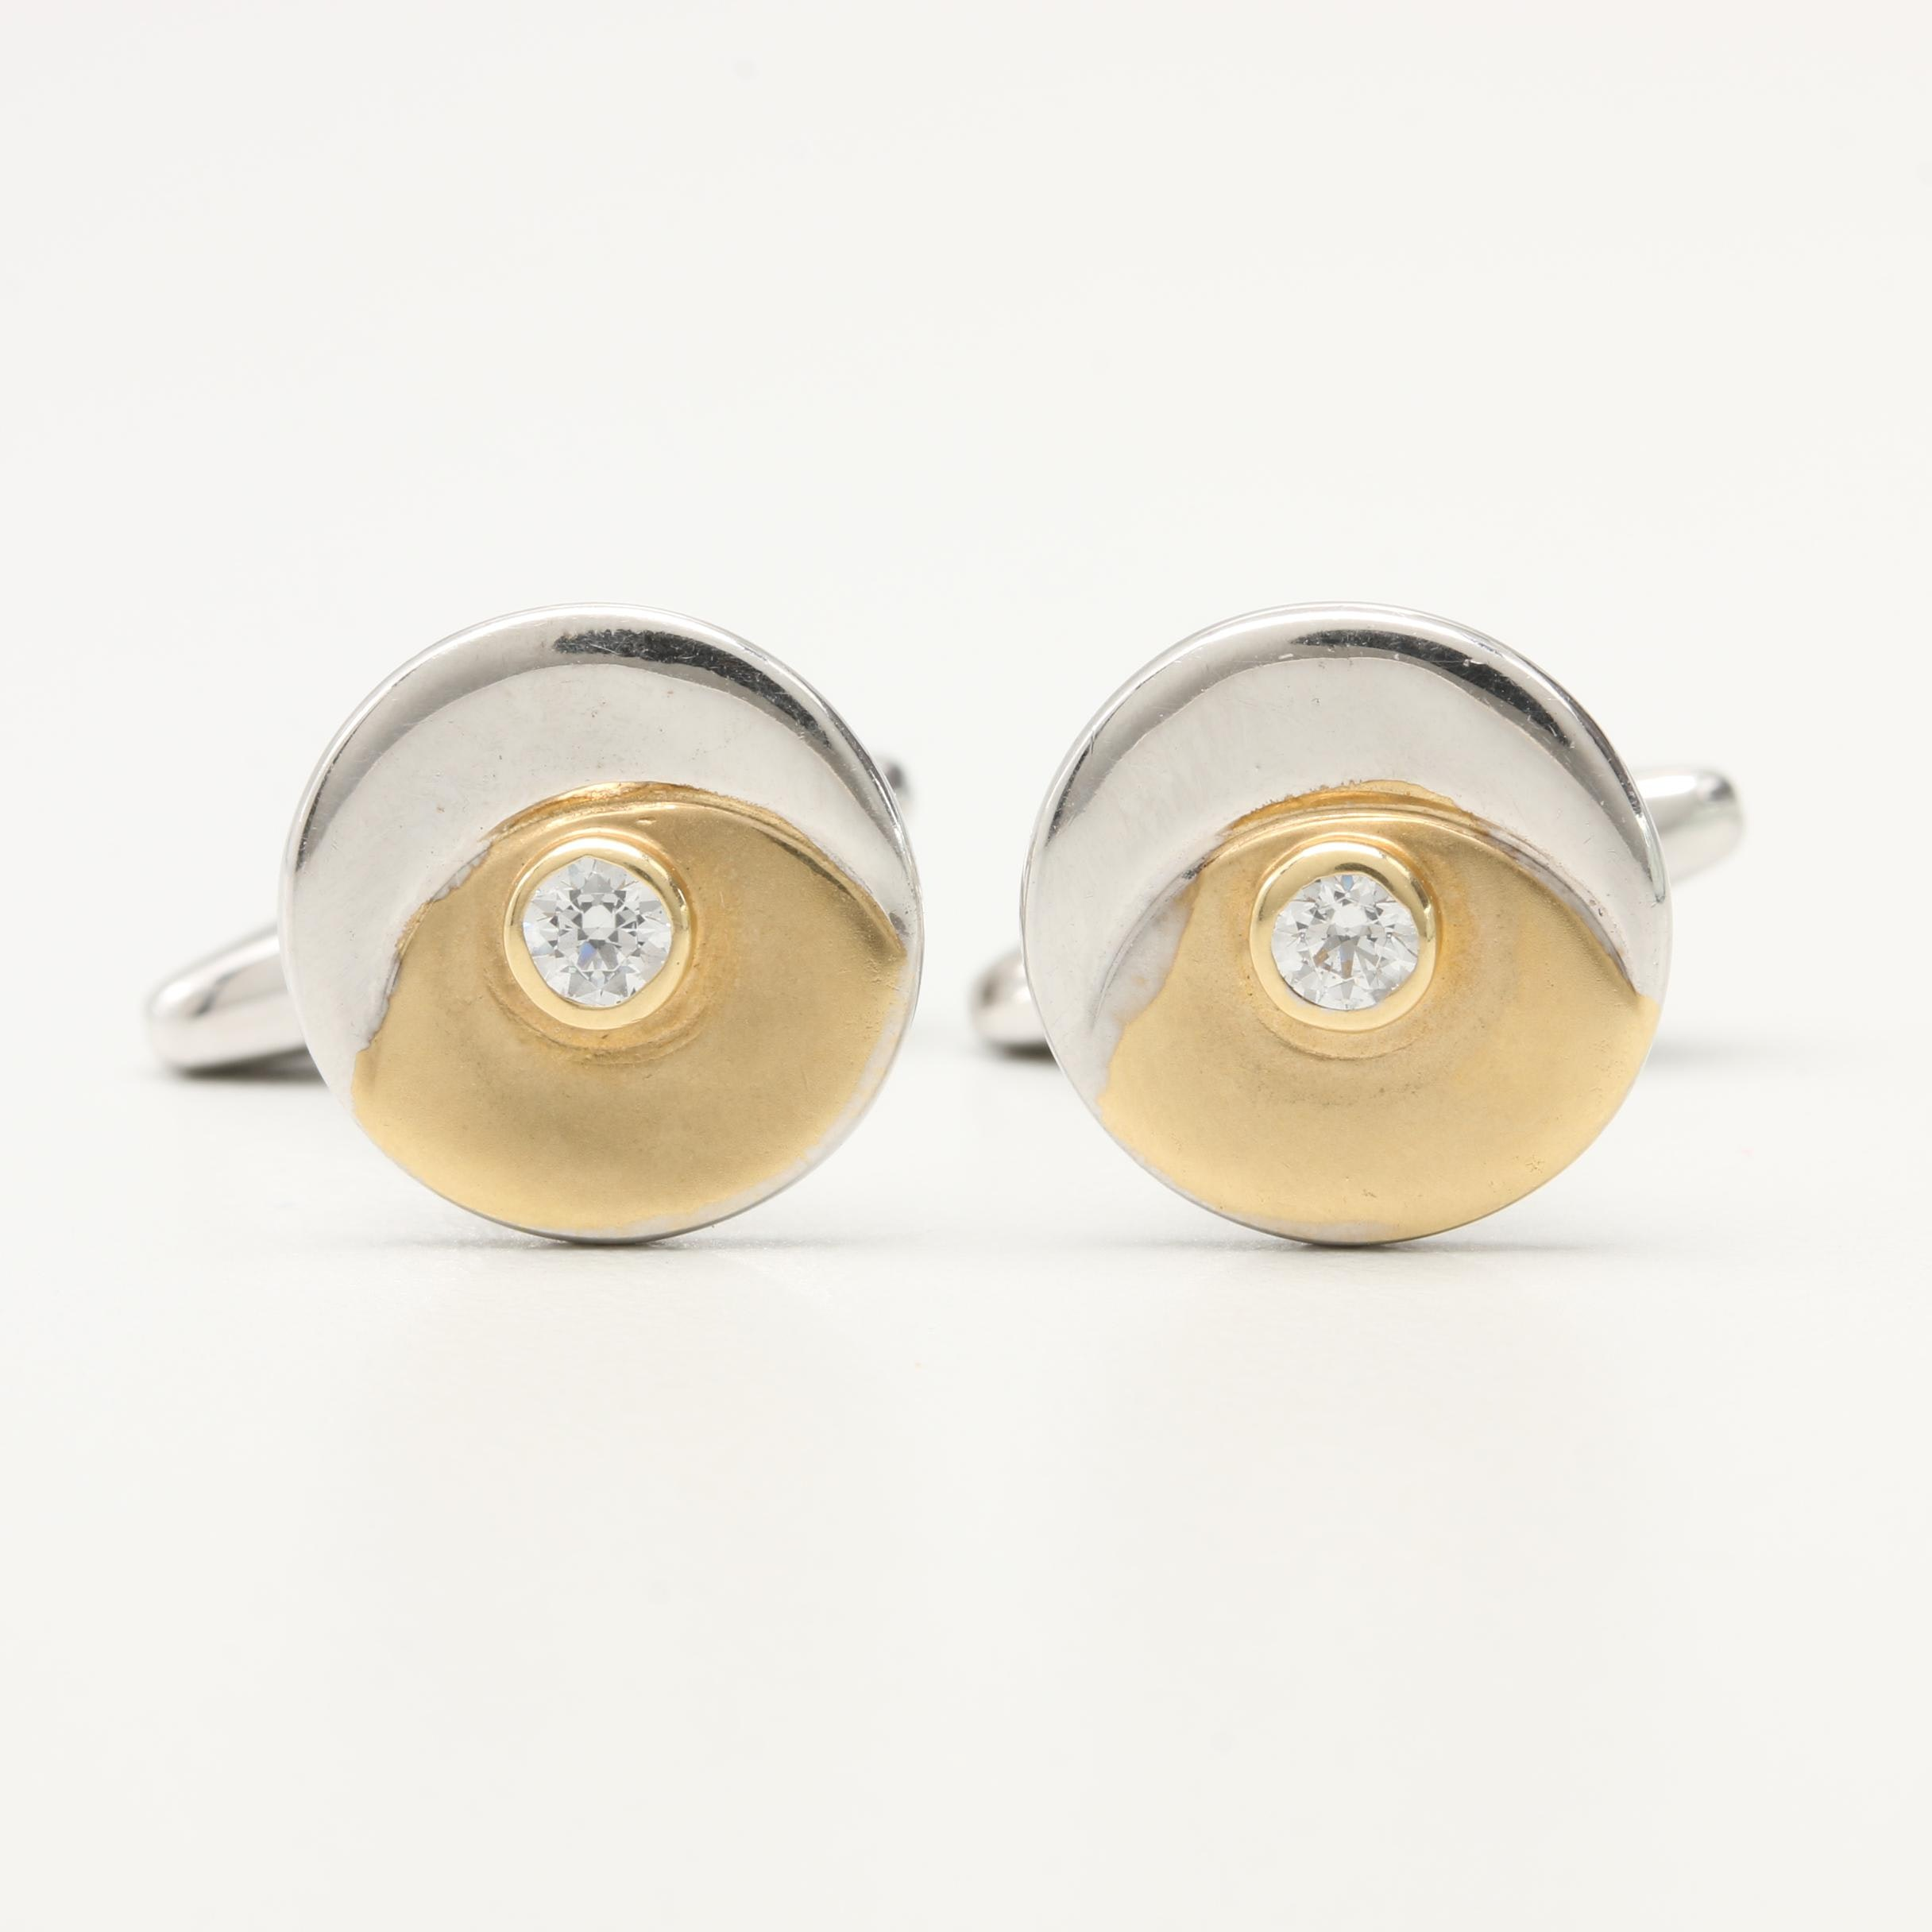 Italian 14K White Gold Cubic Zirconia Cufflinks With Yellow Gold Accents